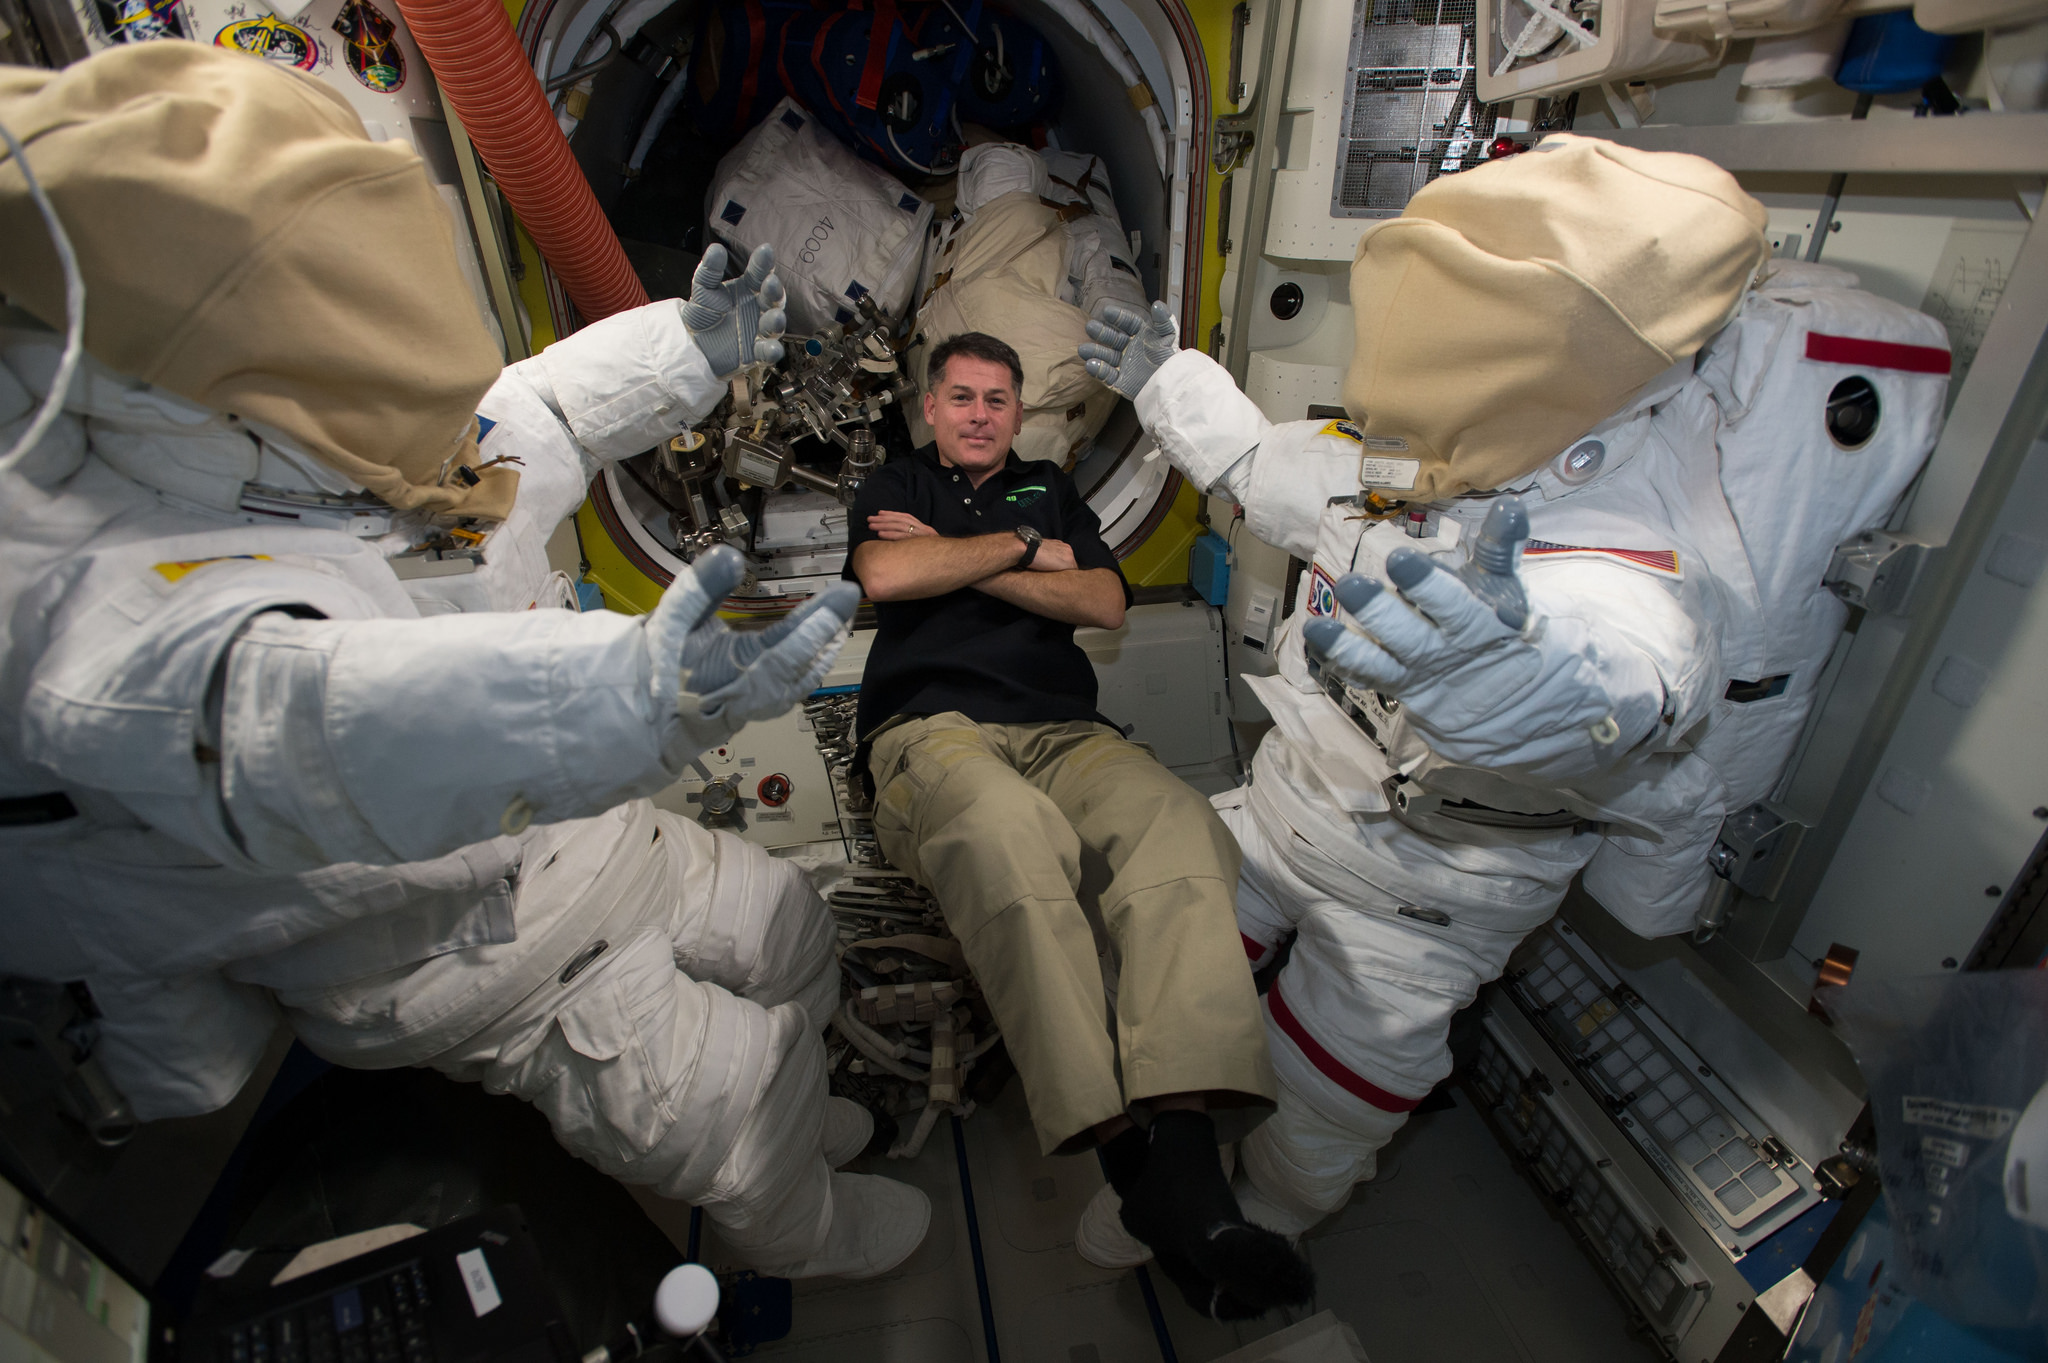 Shane Kimbrough floats next to the spacesuits he was performing maitenence on in advance of January's spacewalks. Photo Credit: NASA